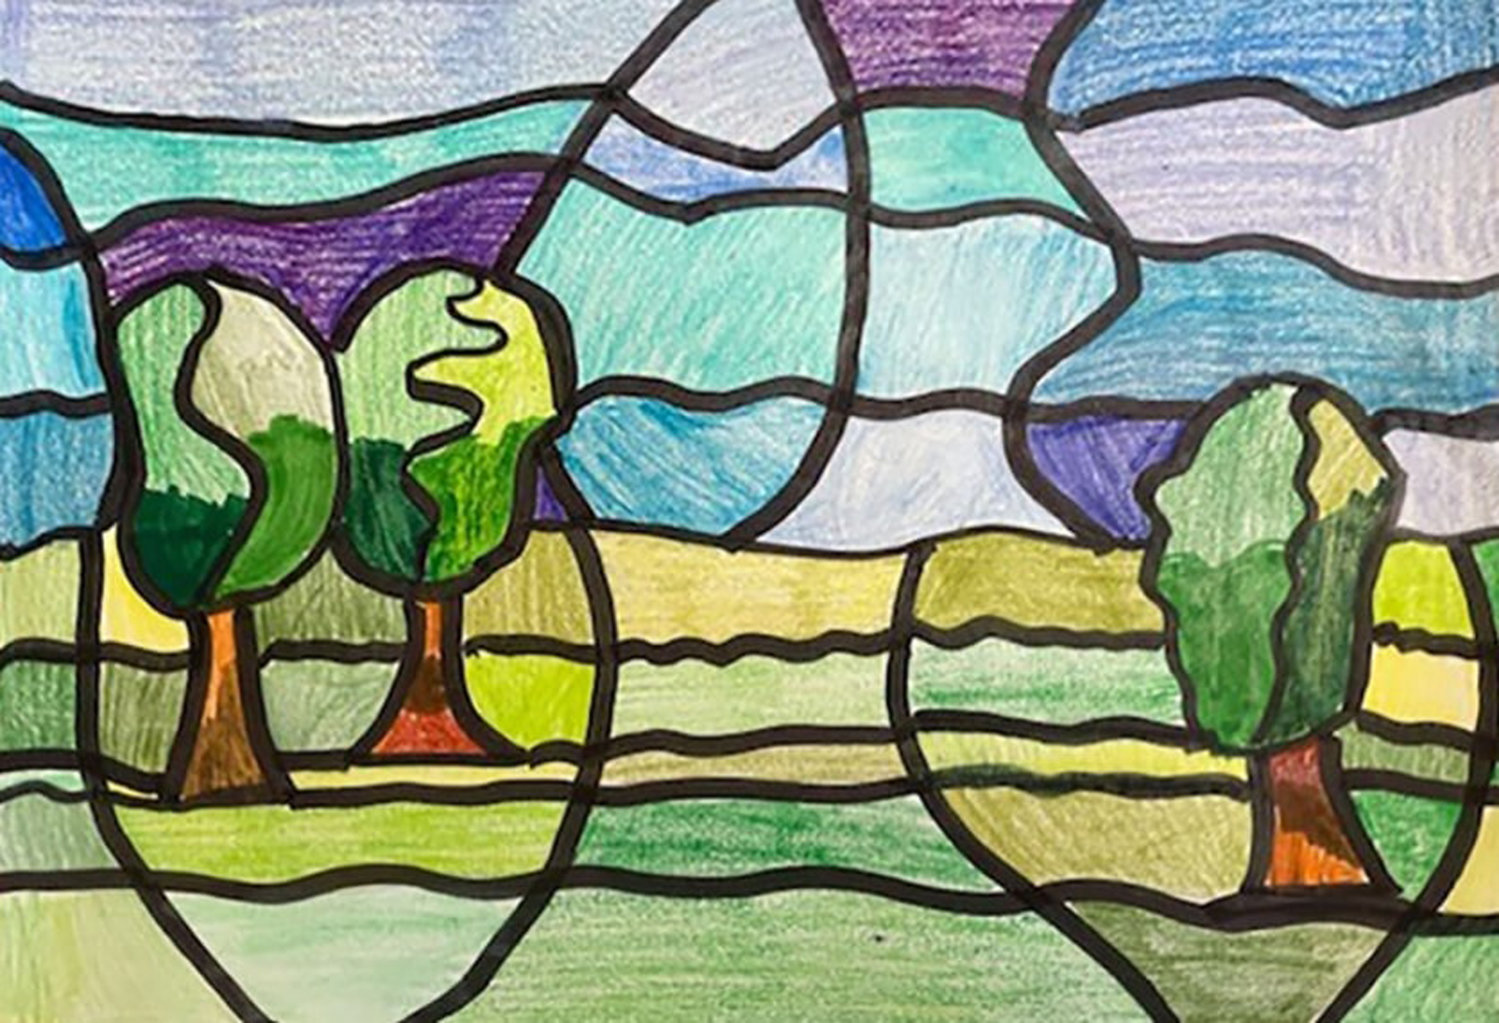 Davison Avenue Intermediate School fifth grader Erika Daly's artwork was featured in the Art Supervisors Association's 2021 Nassau All-County Virtual Art Exhibit.